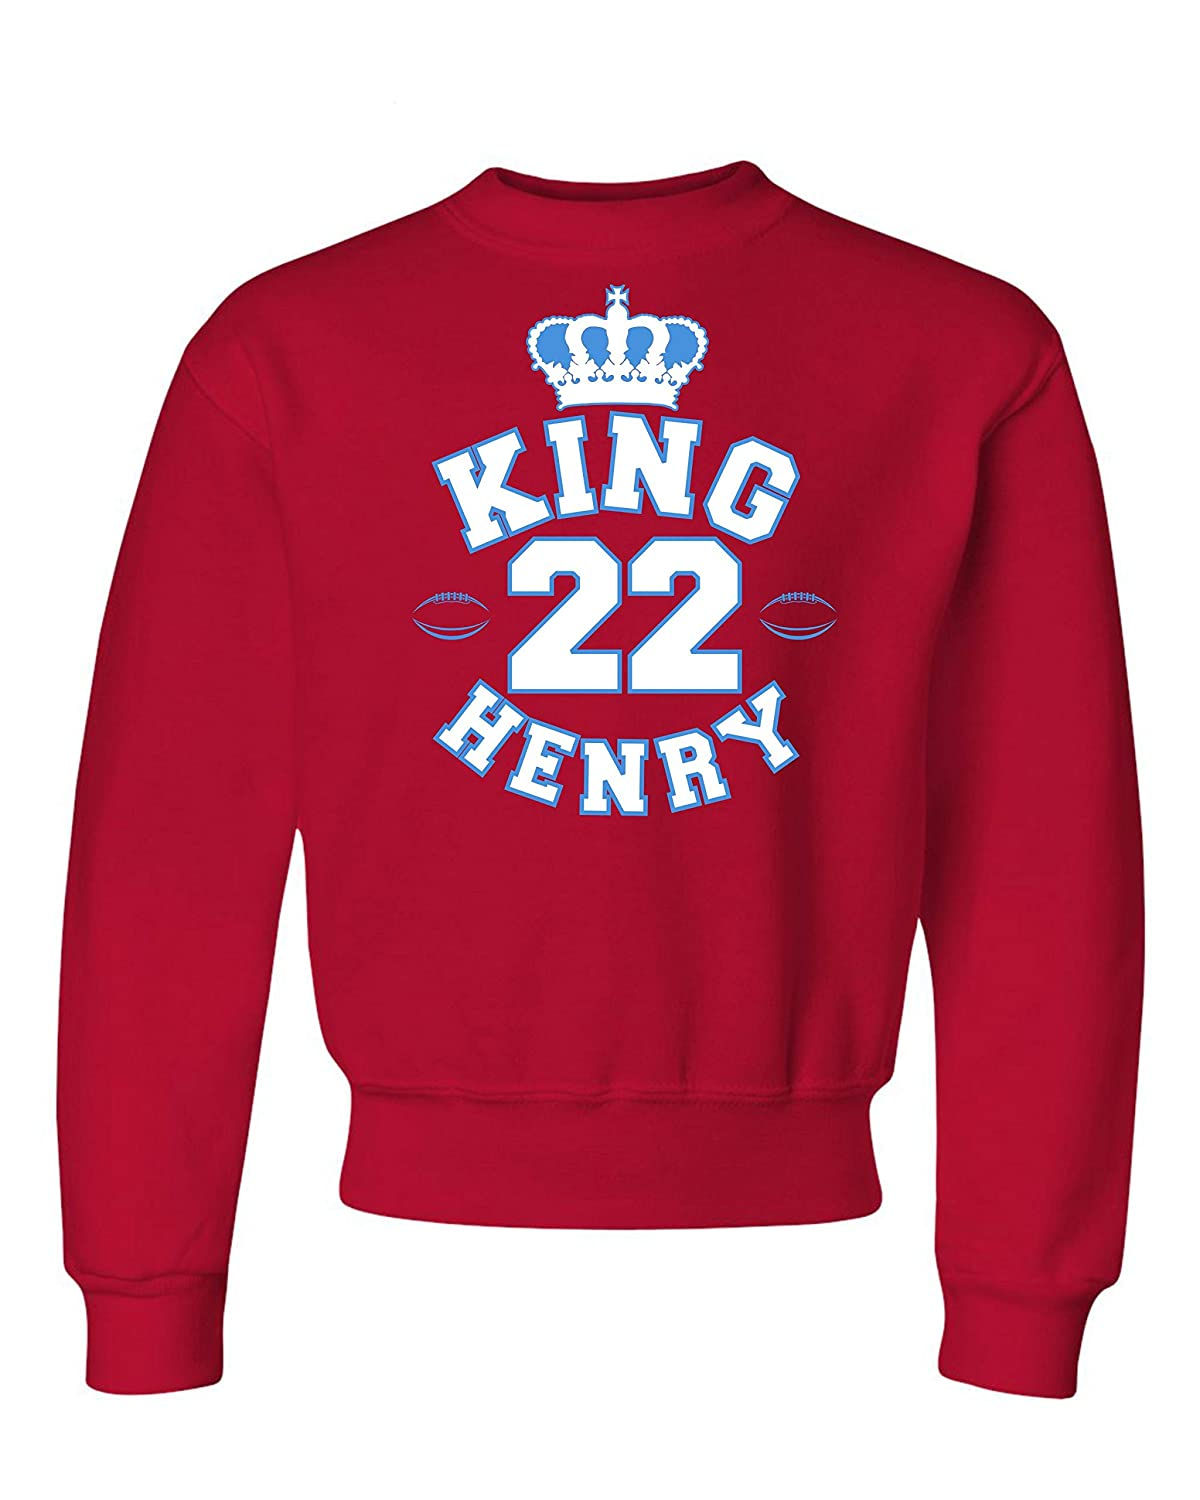 Go All Out Youth King Henry Tennessee Crewneck Sweatshirt